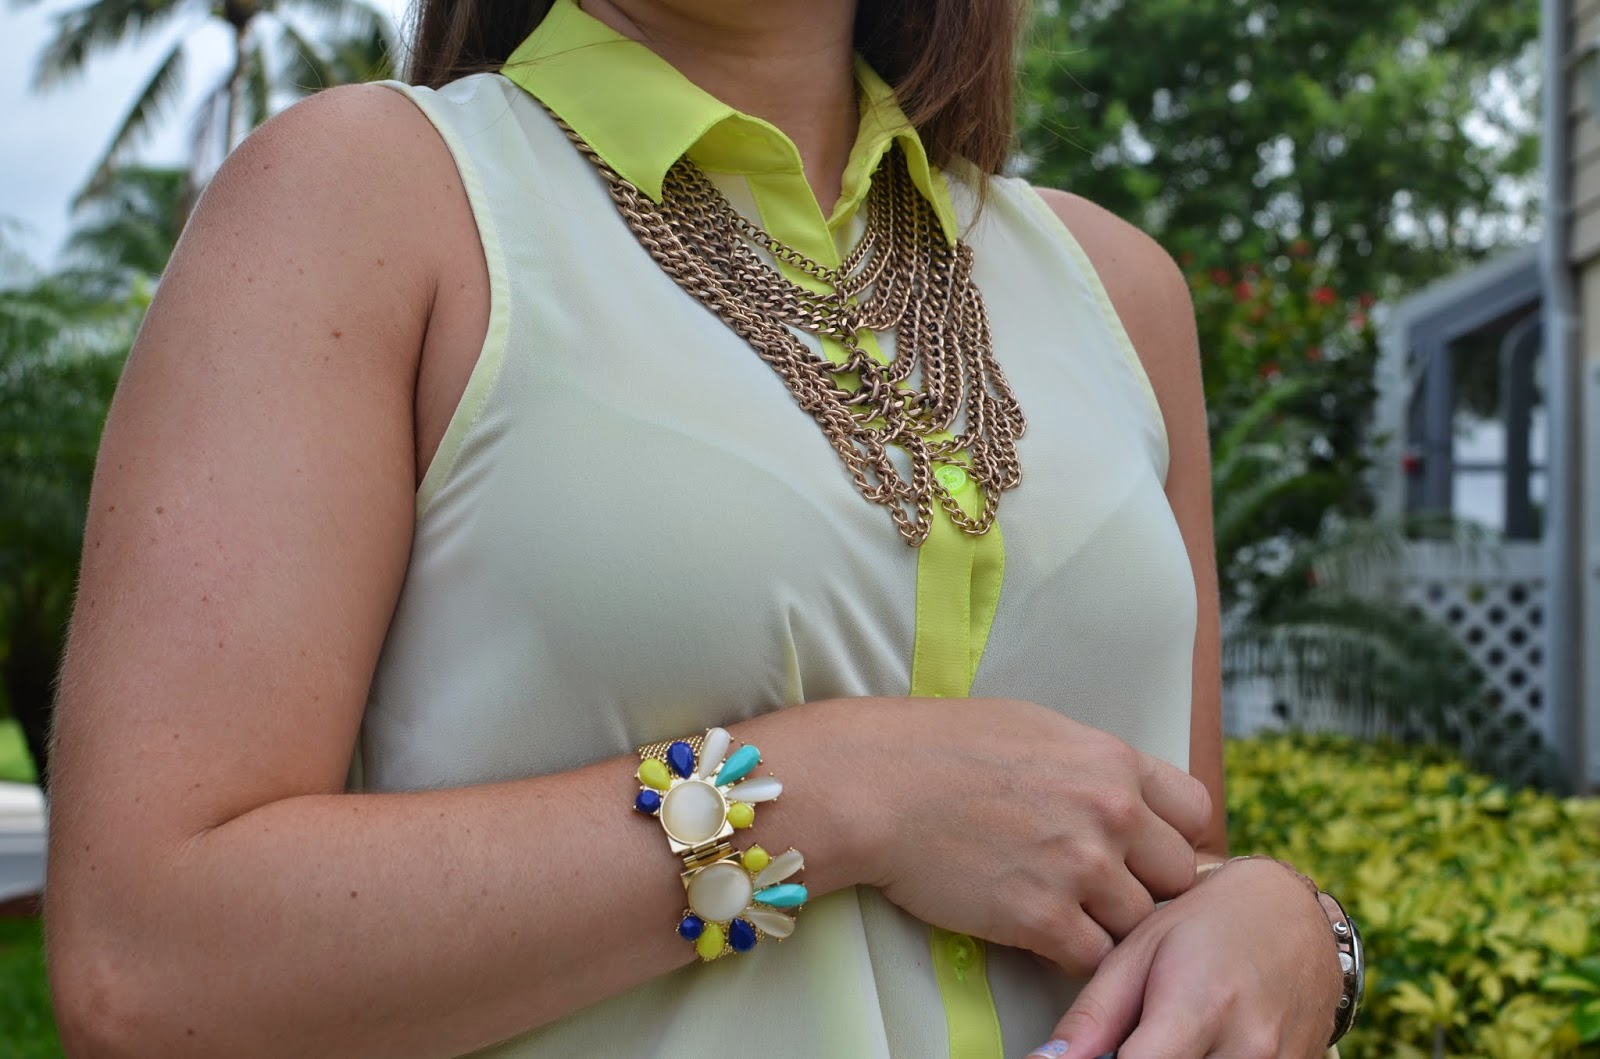 statement necklace - Emma & Sophia bracelet - neon top